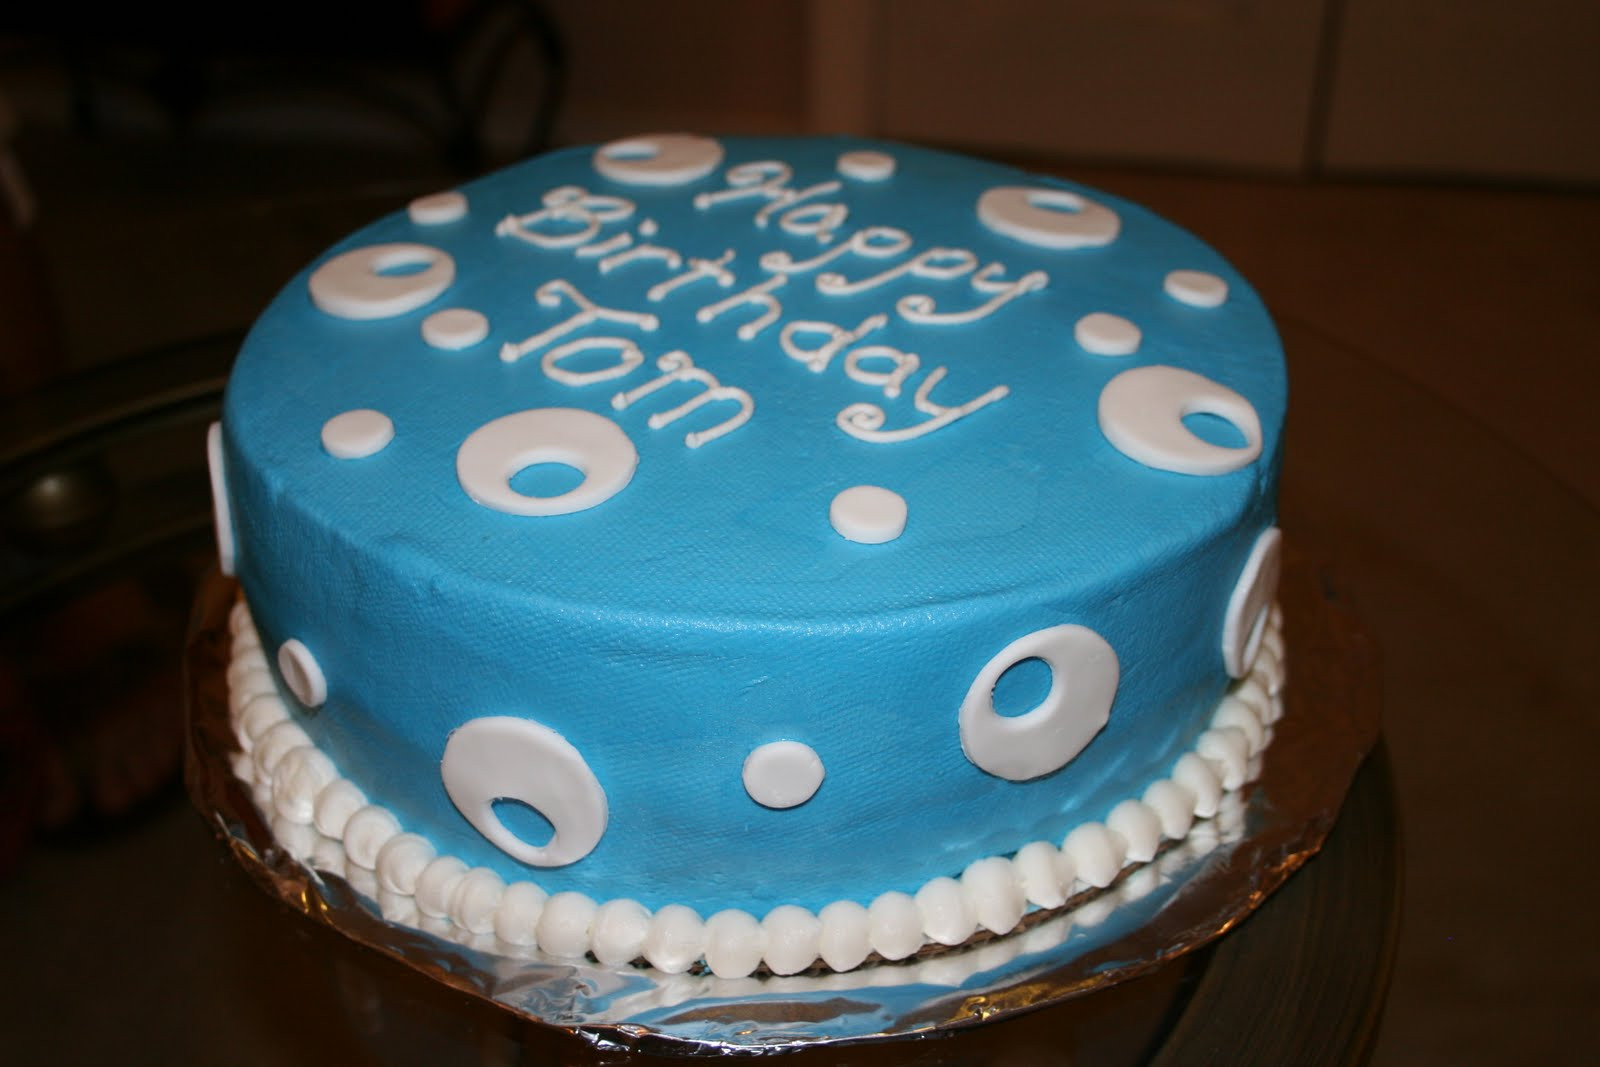 Best ideas about Birthday Cake Designs For Him . Save or Pin Rachel s Creative Cakes Birthday cake for him Now.